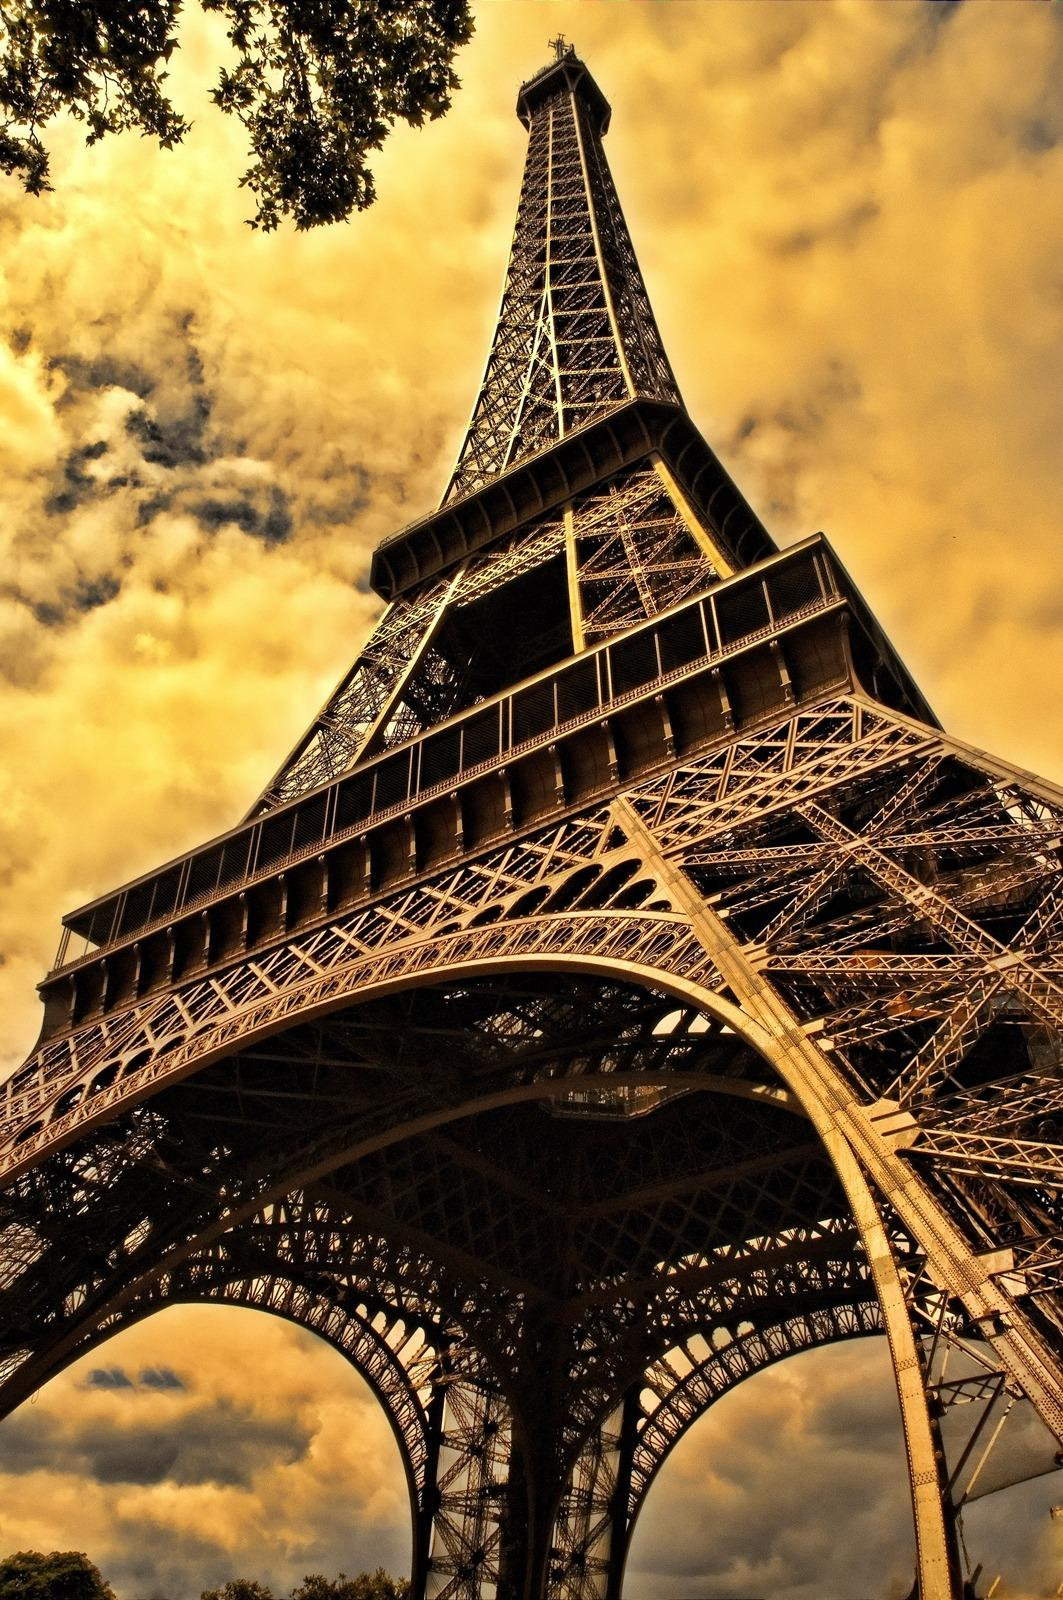 The Eiffel Tower Sepia